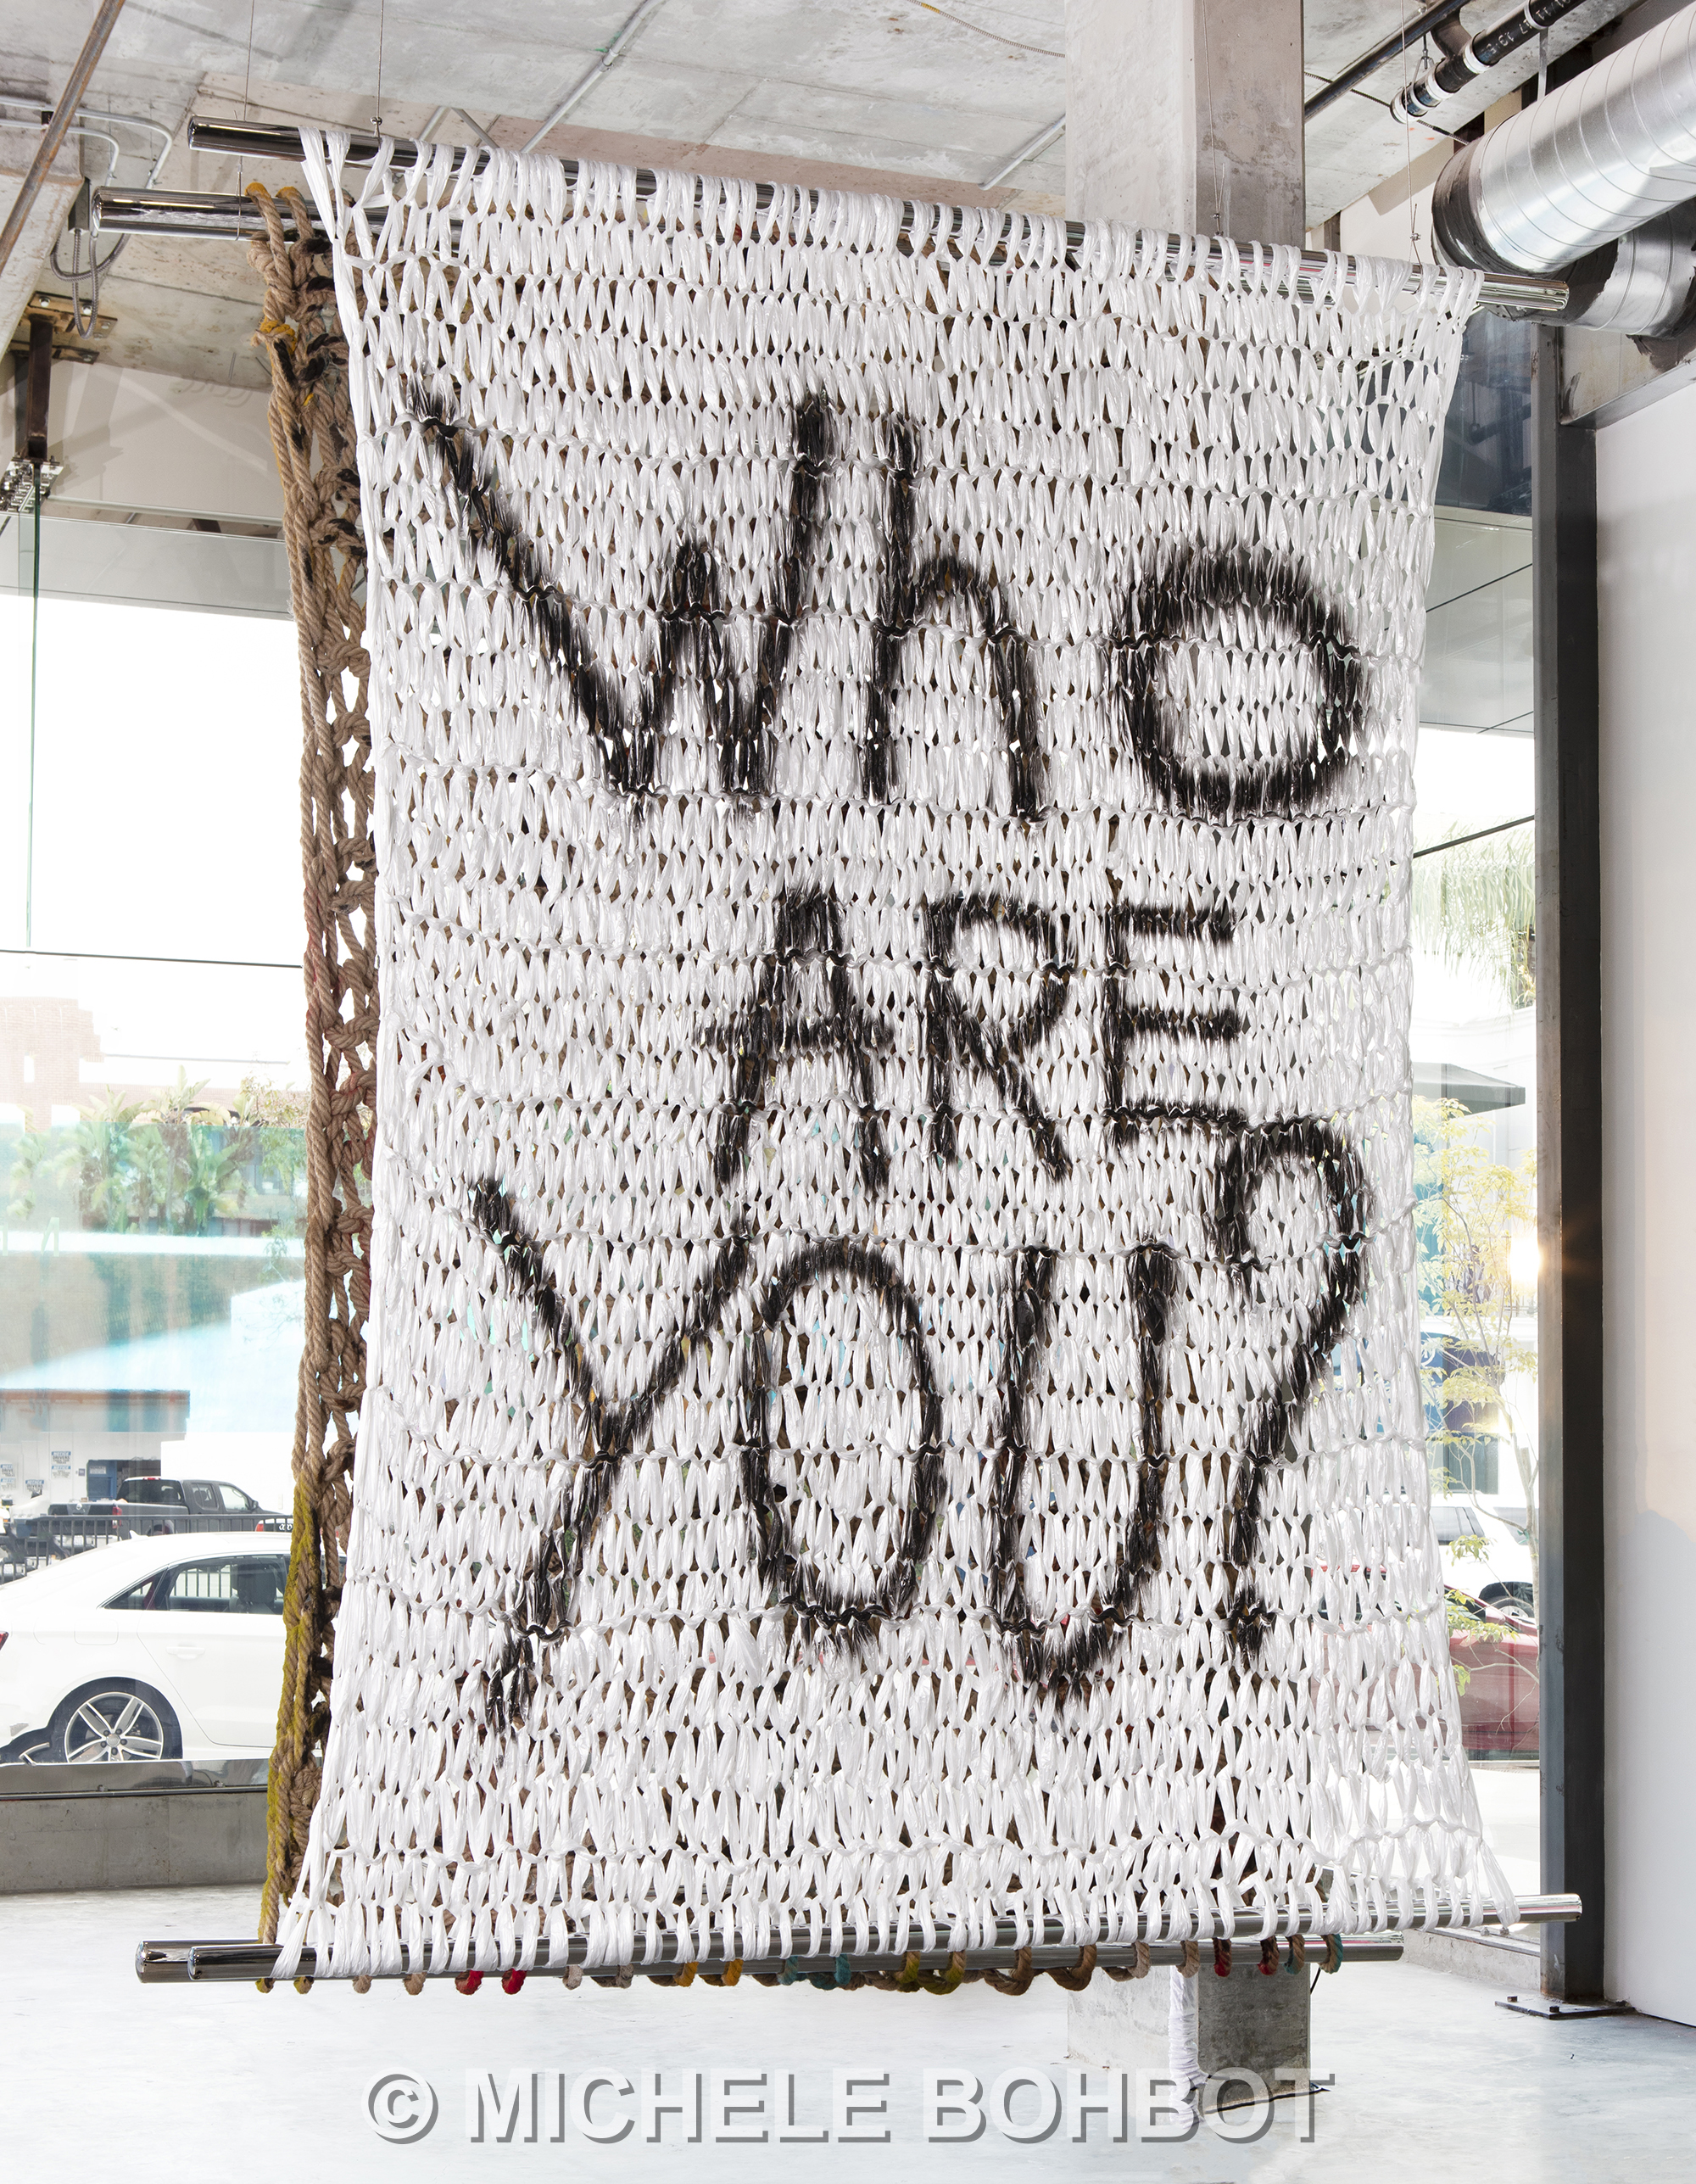 WHO ARE YOU? | 10 X 8'